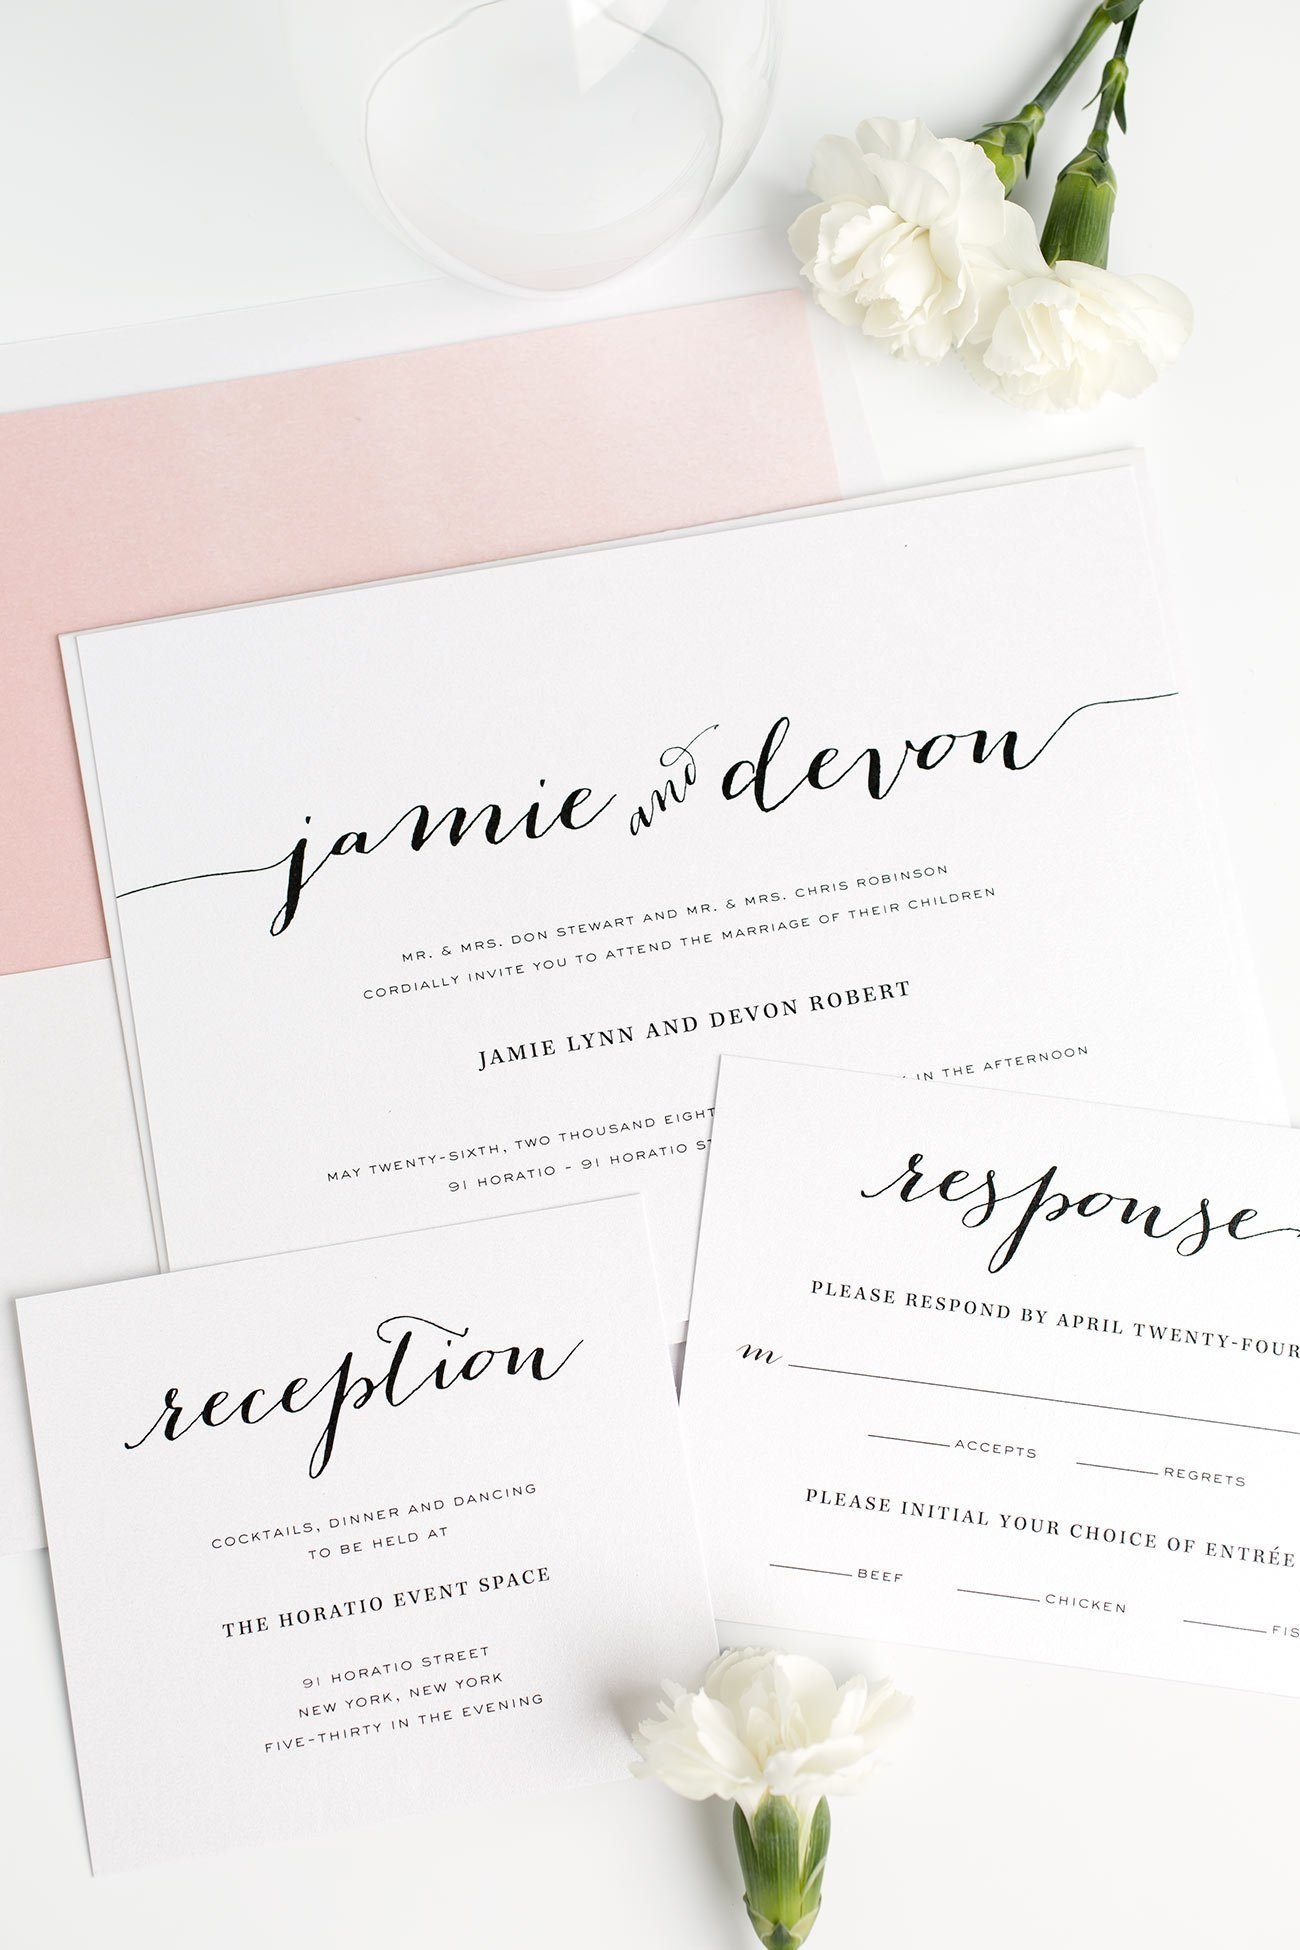 Gorgeous Calligraphy Wedding Invitations in Pink with a Watercolor Envelope Liner